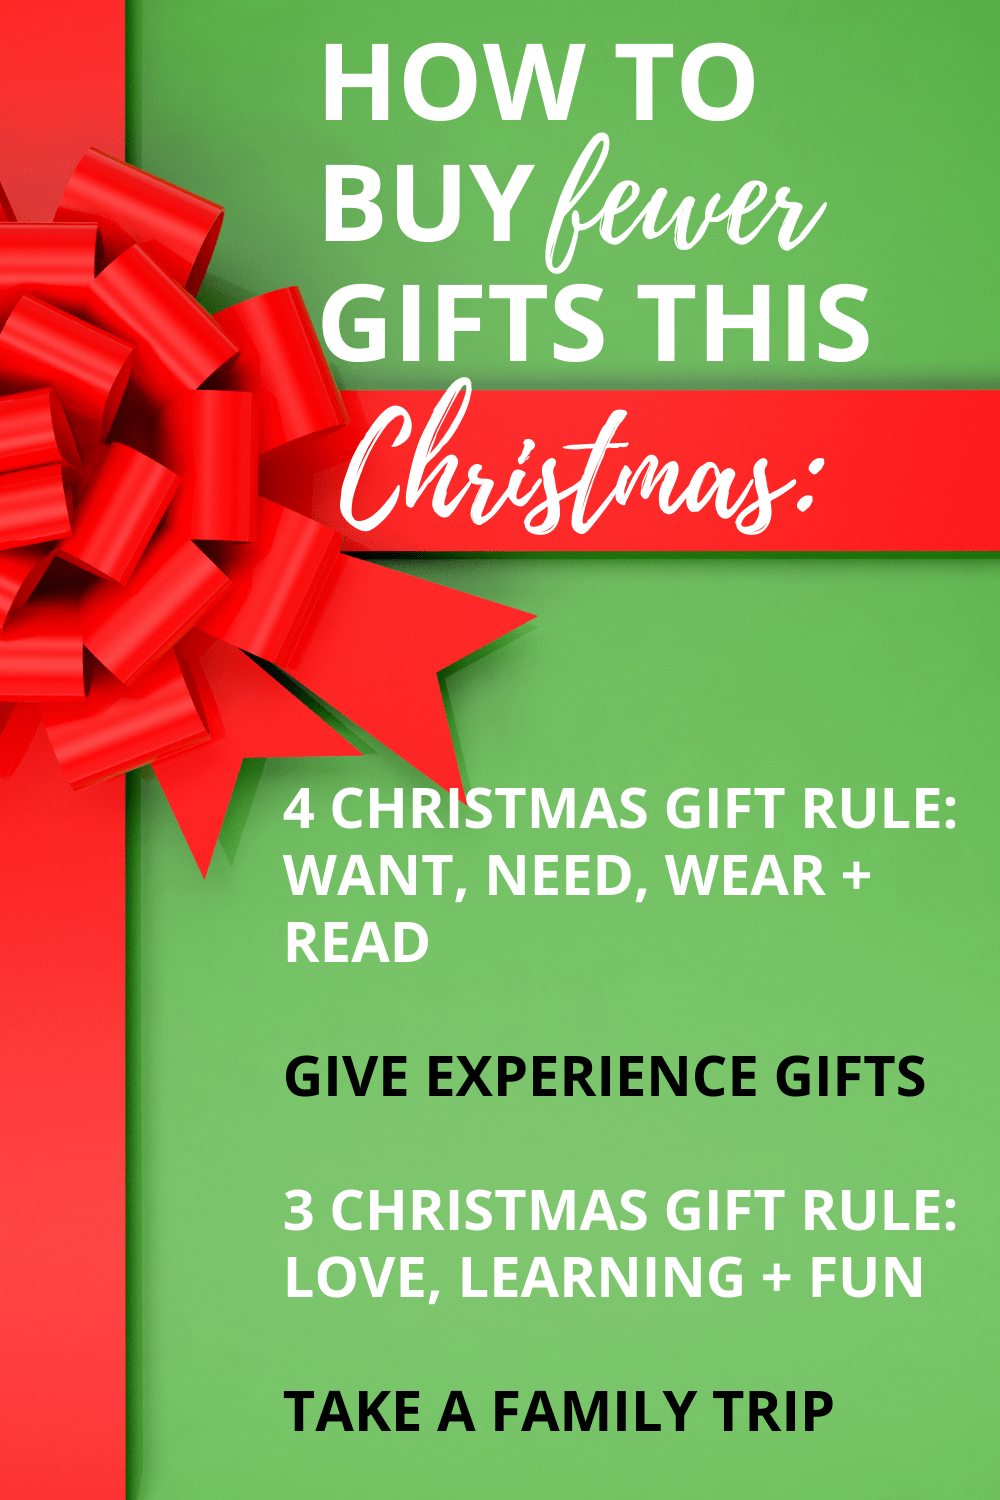 The 4 Christmas Gift Rule + Other Awesome Ways to Buy Fewer Presents